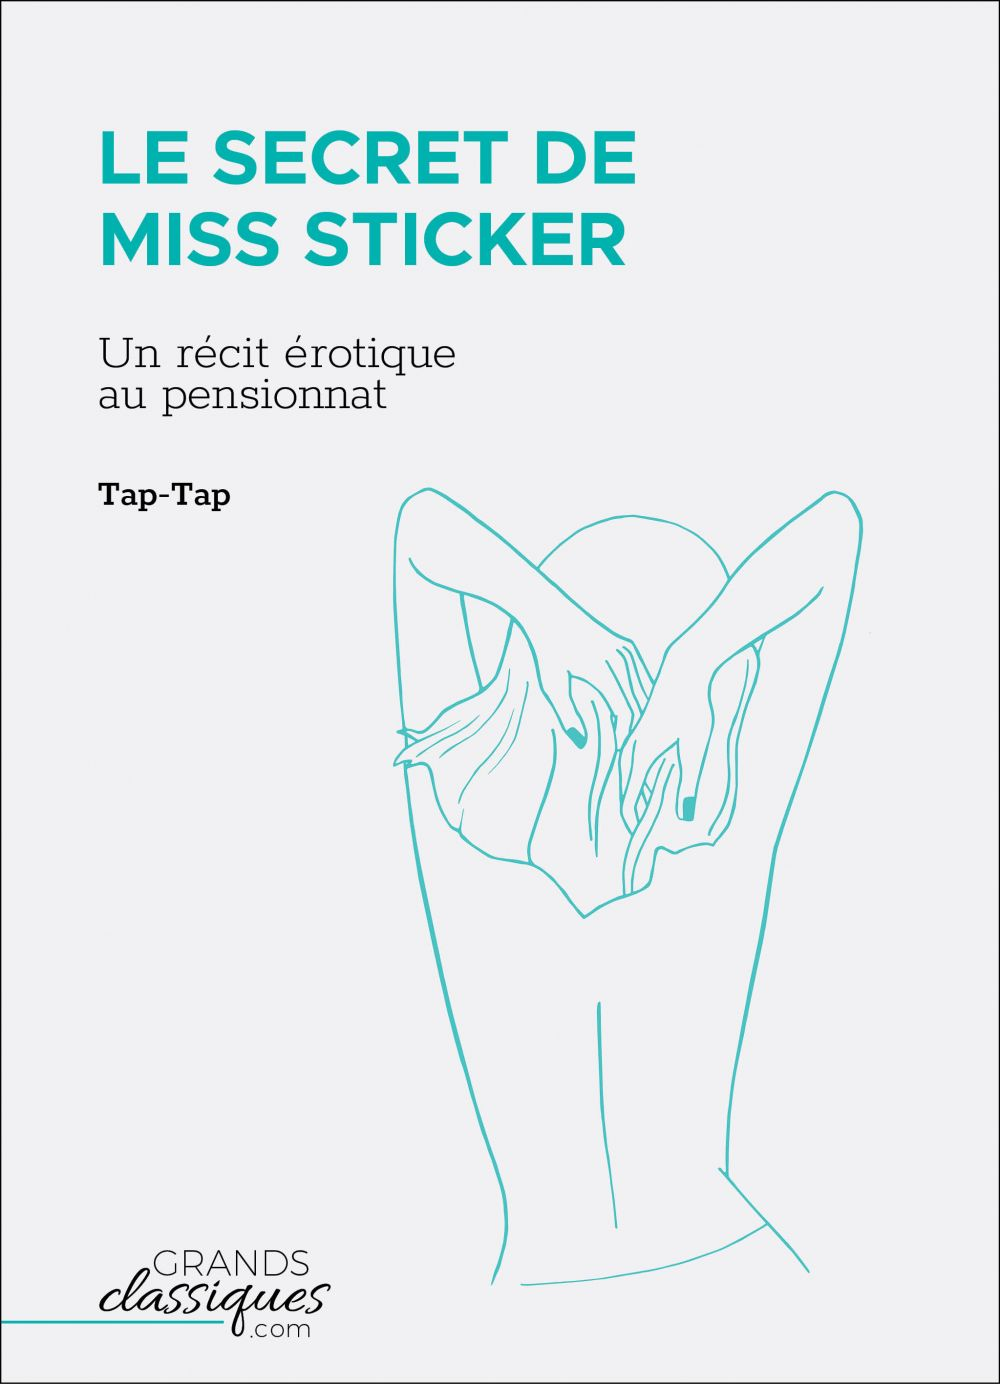 Le Secret de Miss Sticker